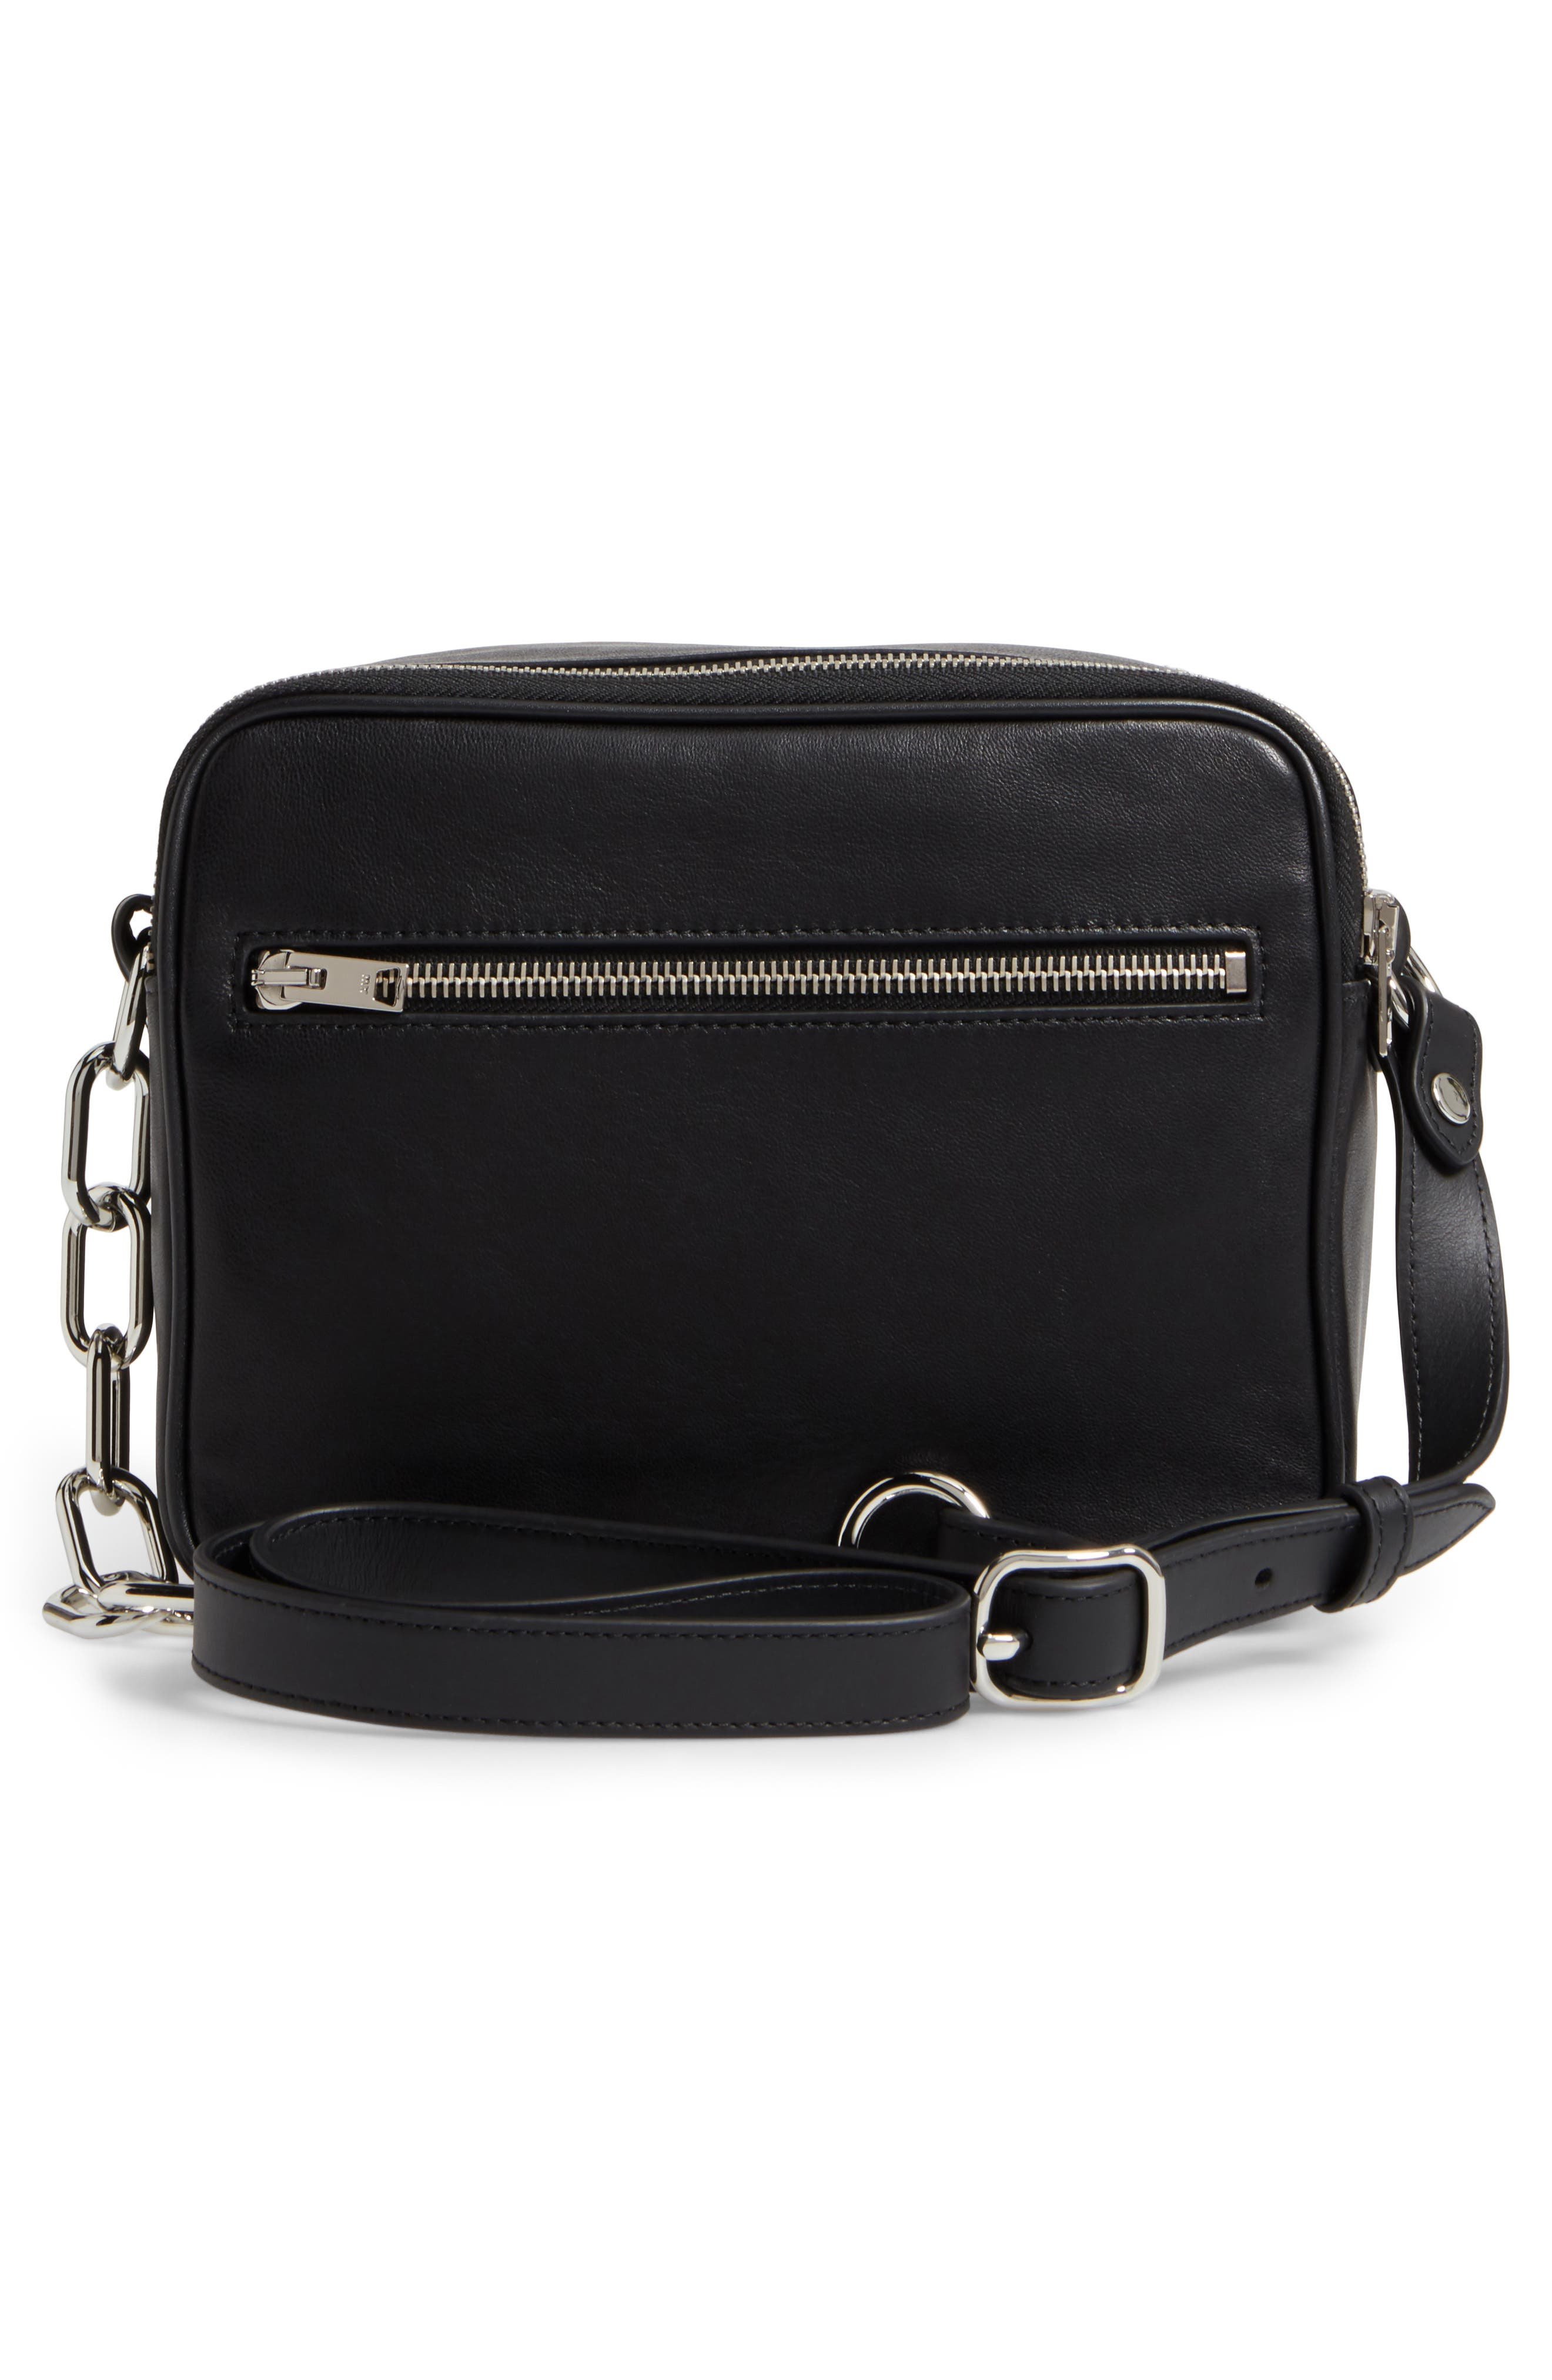 Washed Leather Crossbody Bag,                             Alternate thumbnail 3, color,                             001